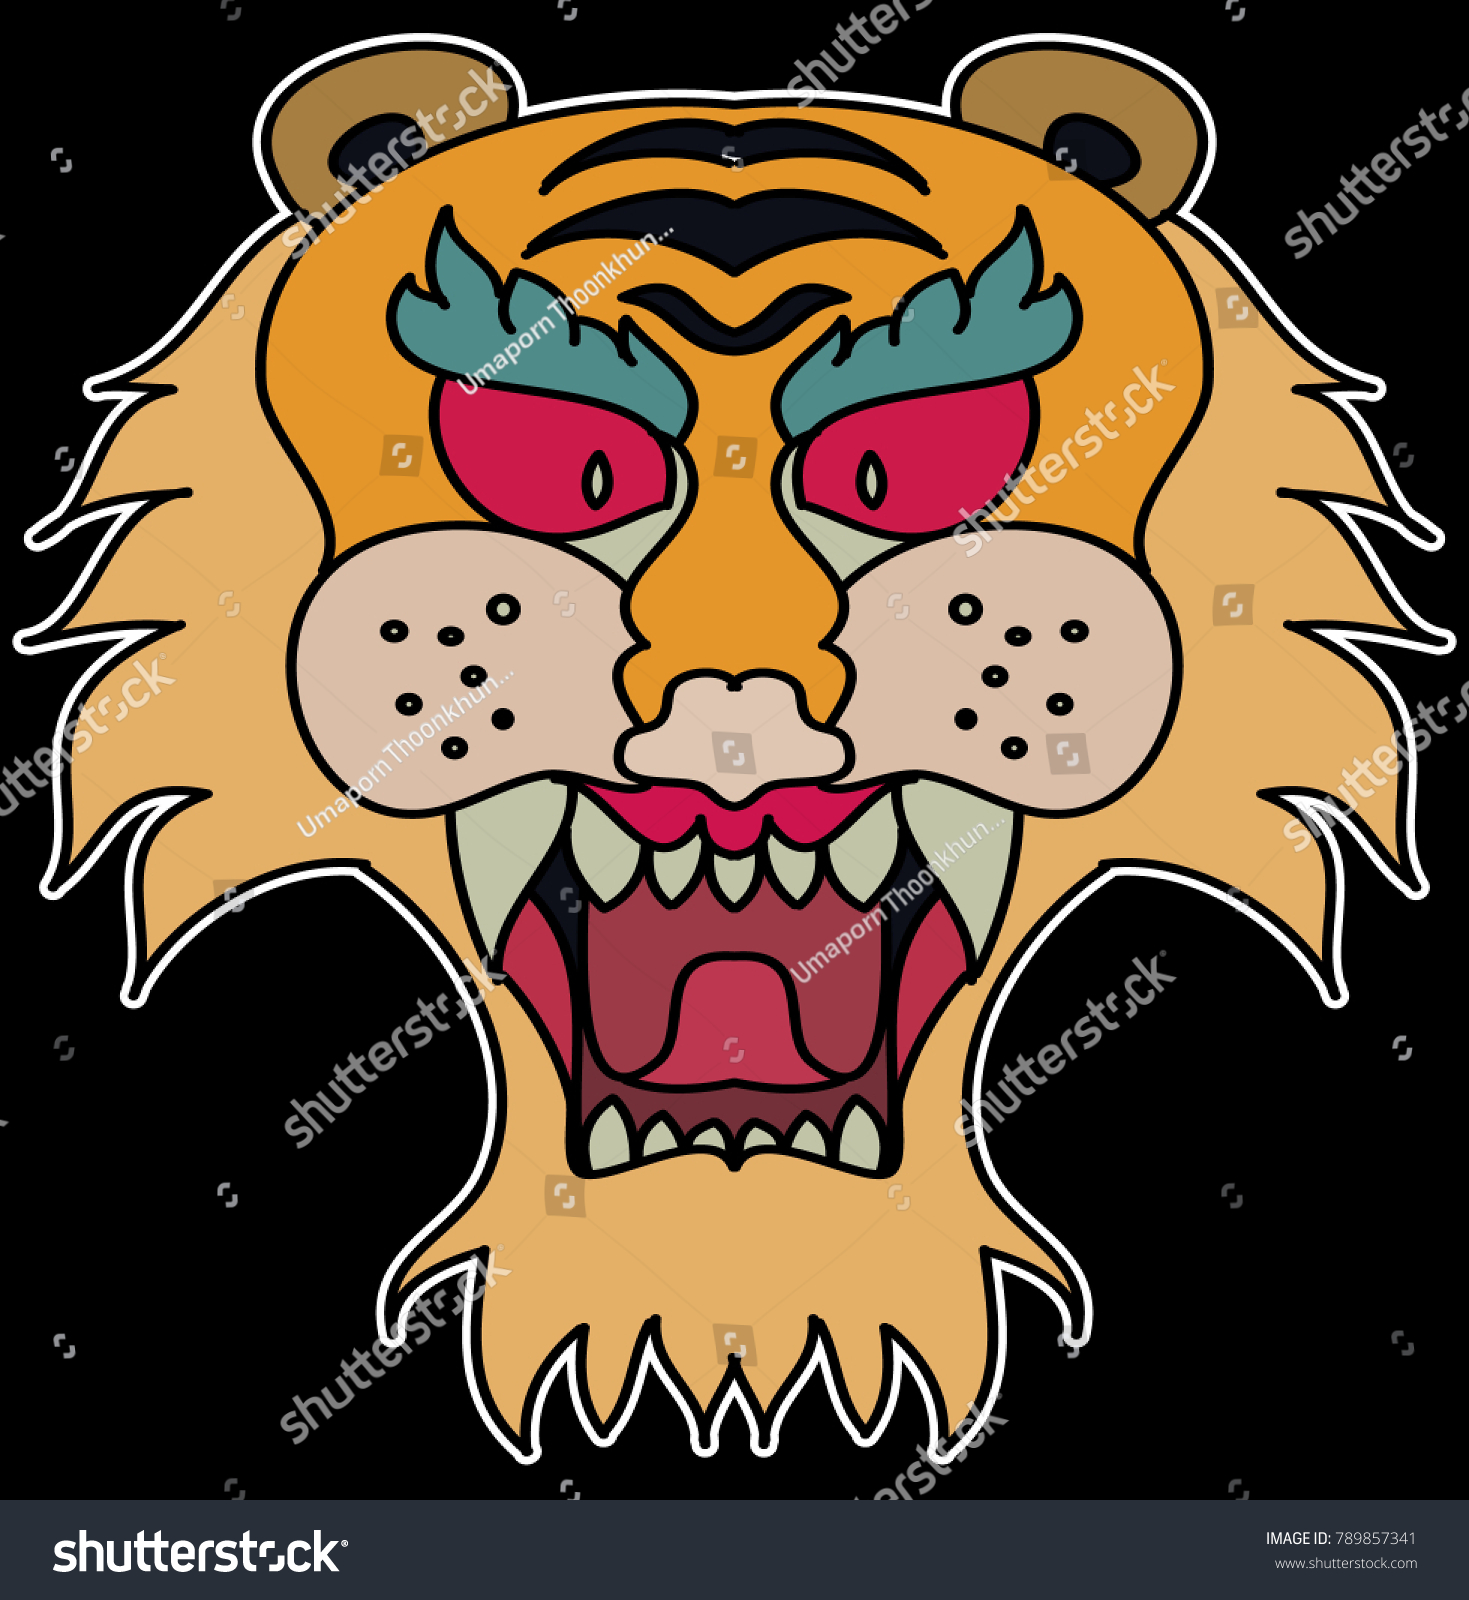 331606812 The mask Tiger face sticker vector.Tiger head traditional tattoo.Tiger  roaring